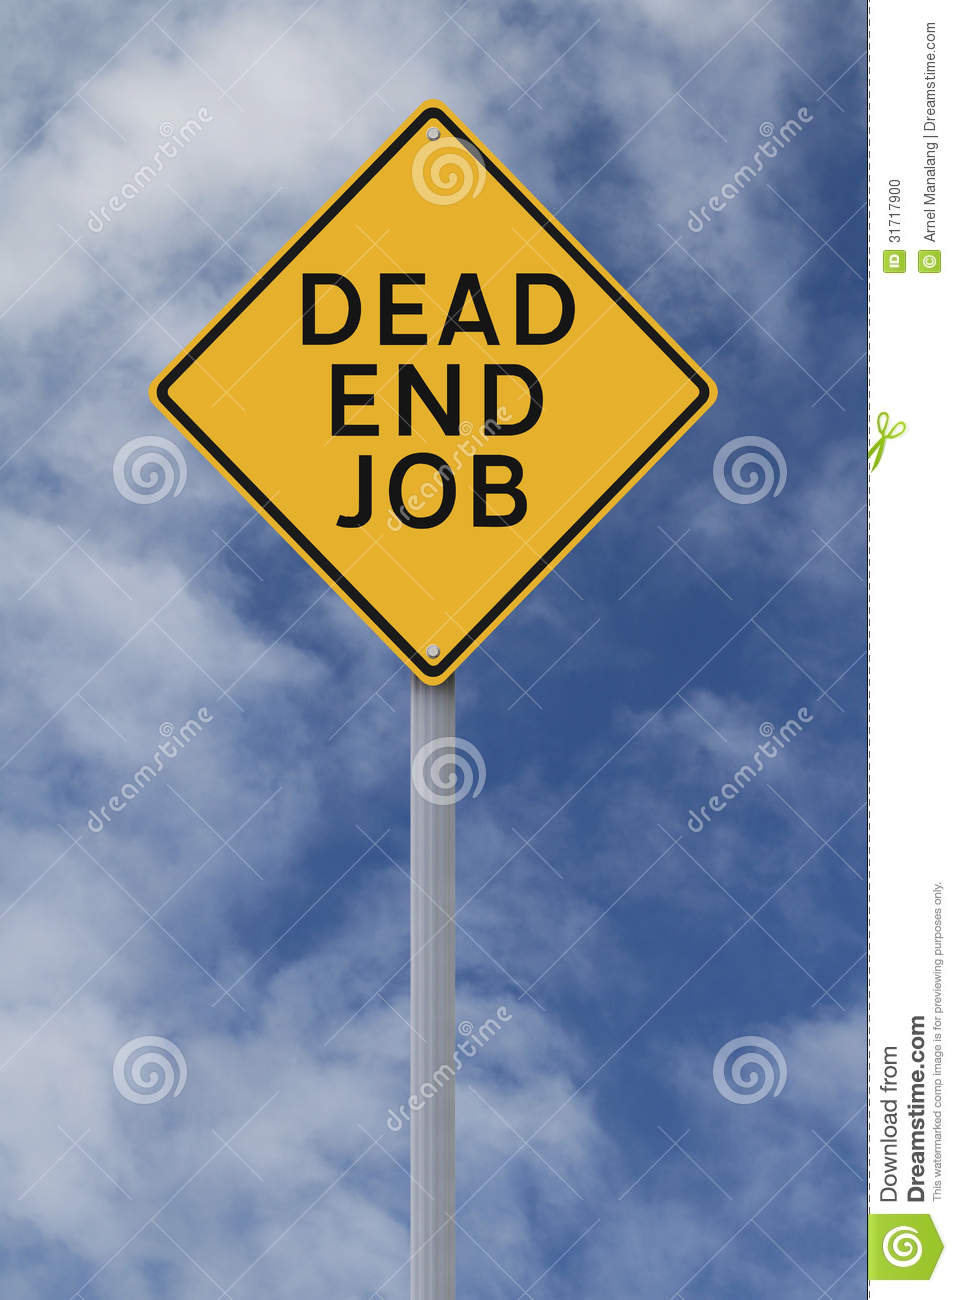 3 Signs You're in a Dead-End Job